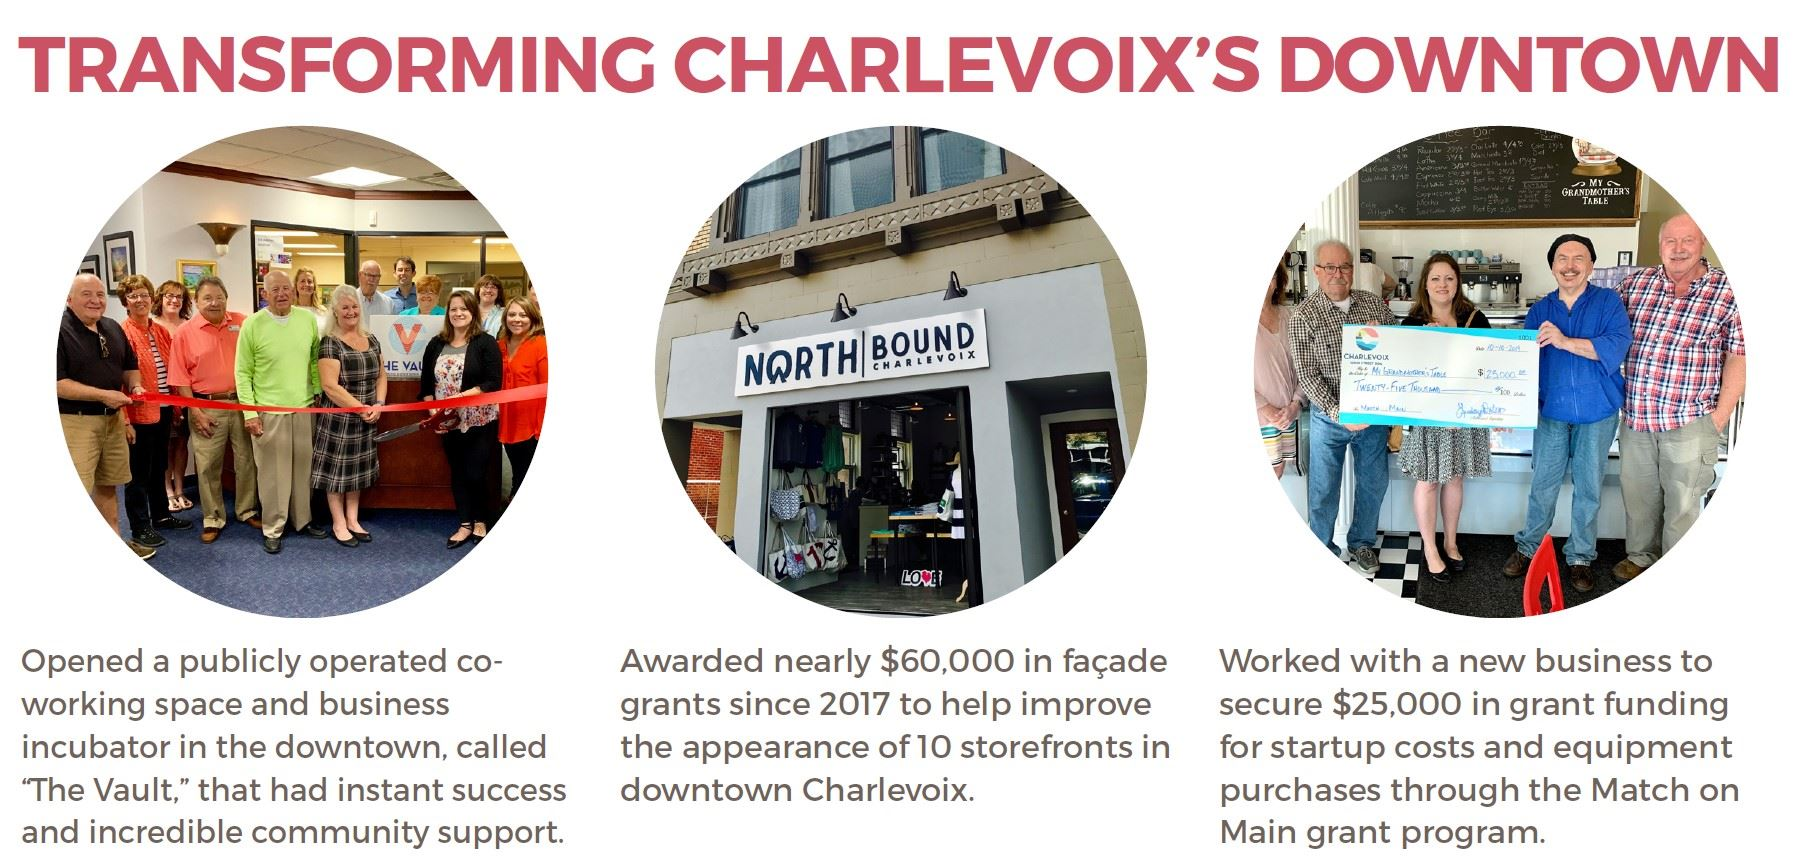 transforming charlevoix downtown